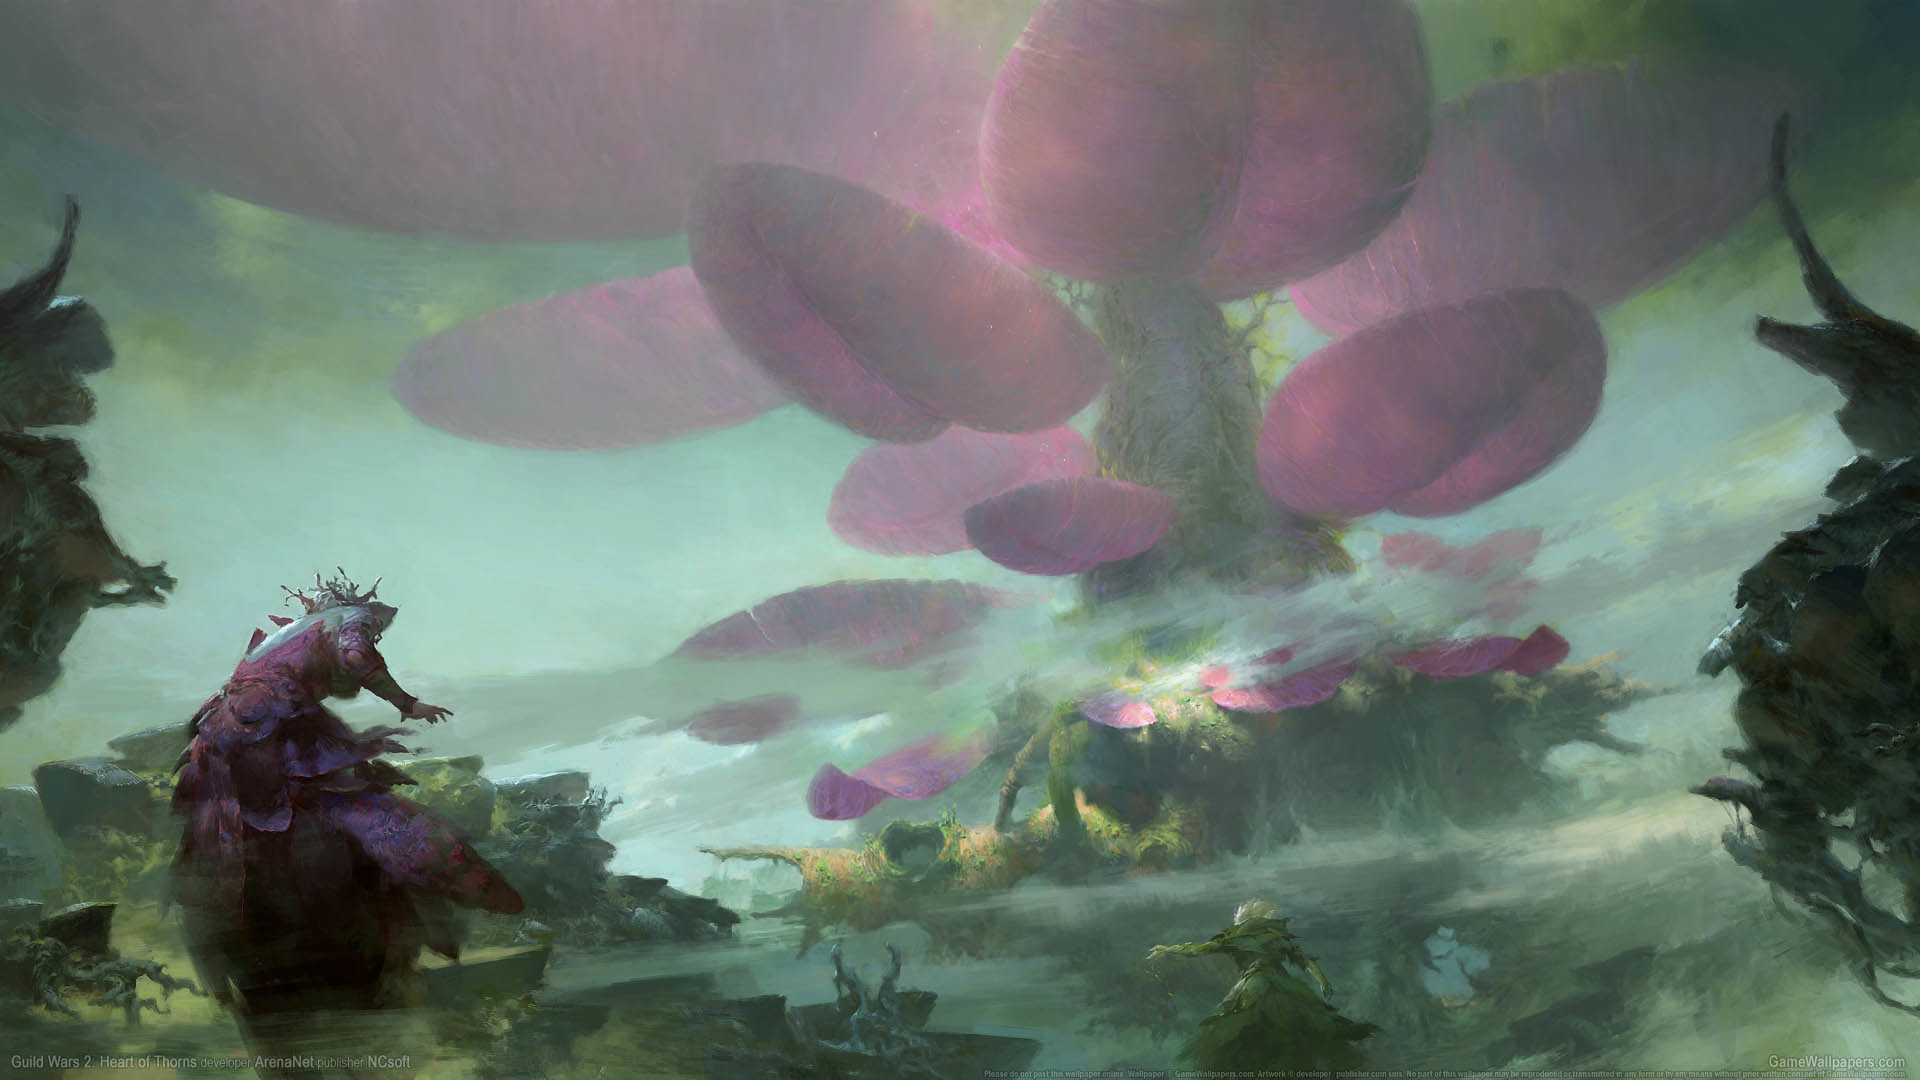 1920x1080 Guild Wars 2: Heart of Thorns Hintergrundbild 03